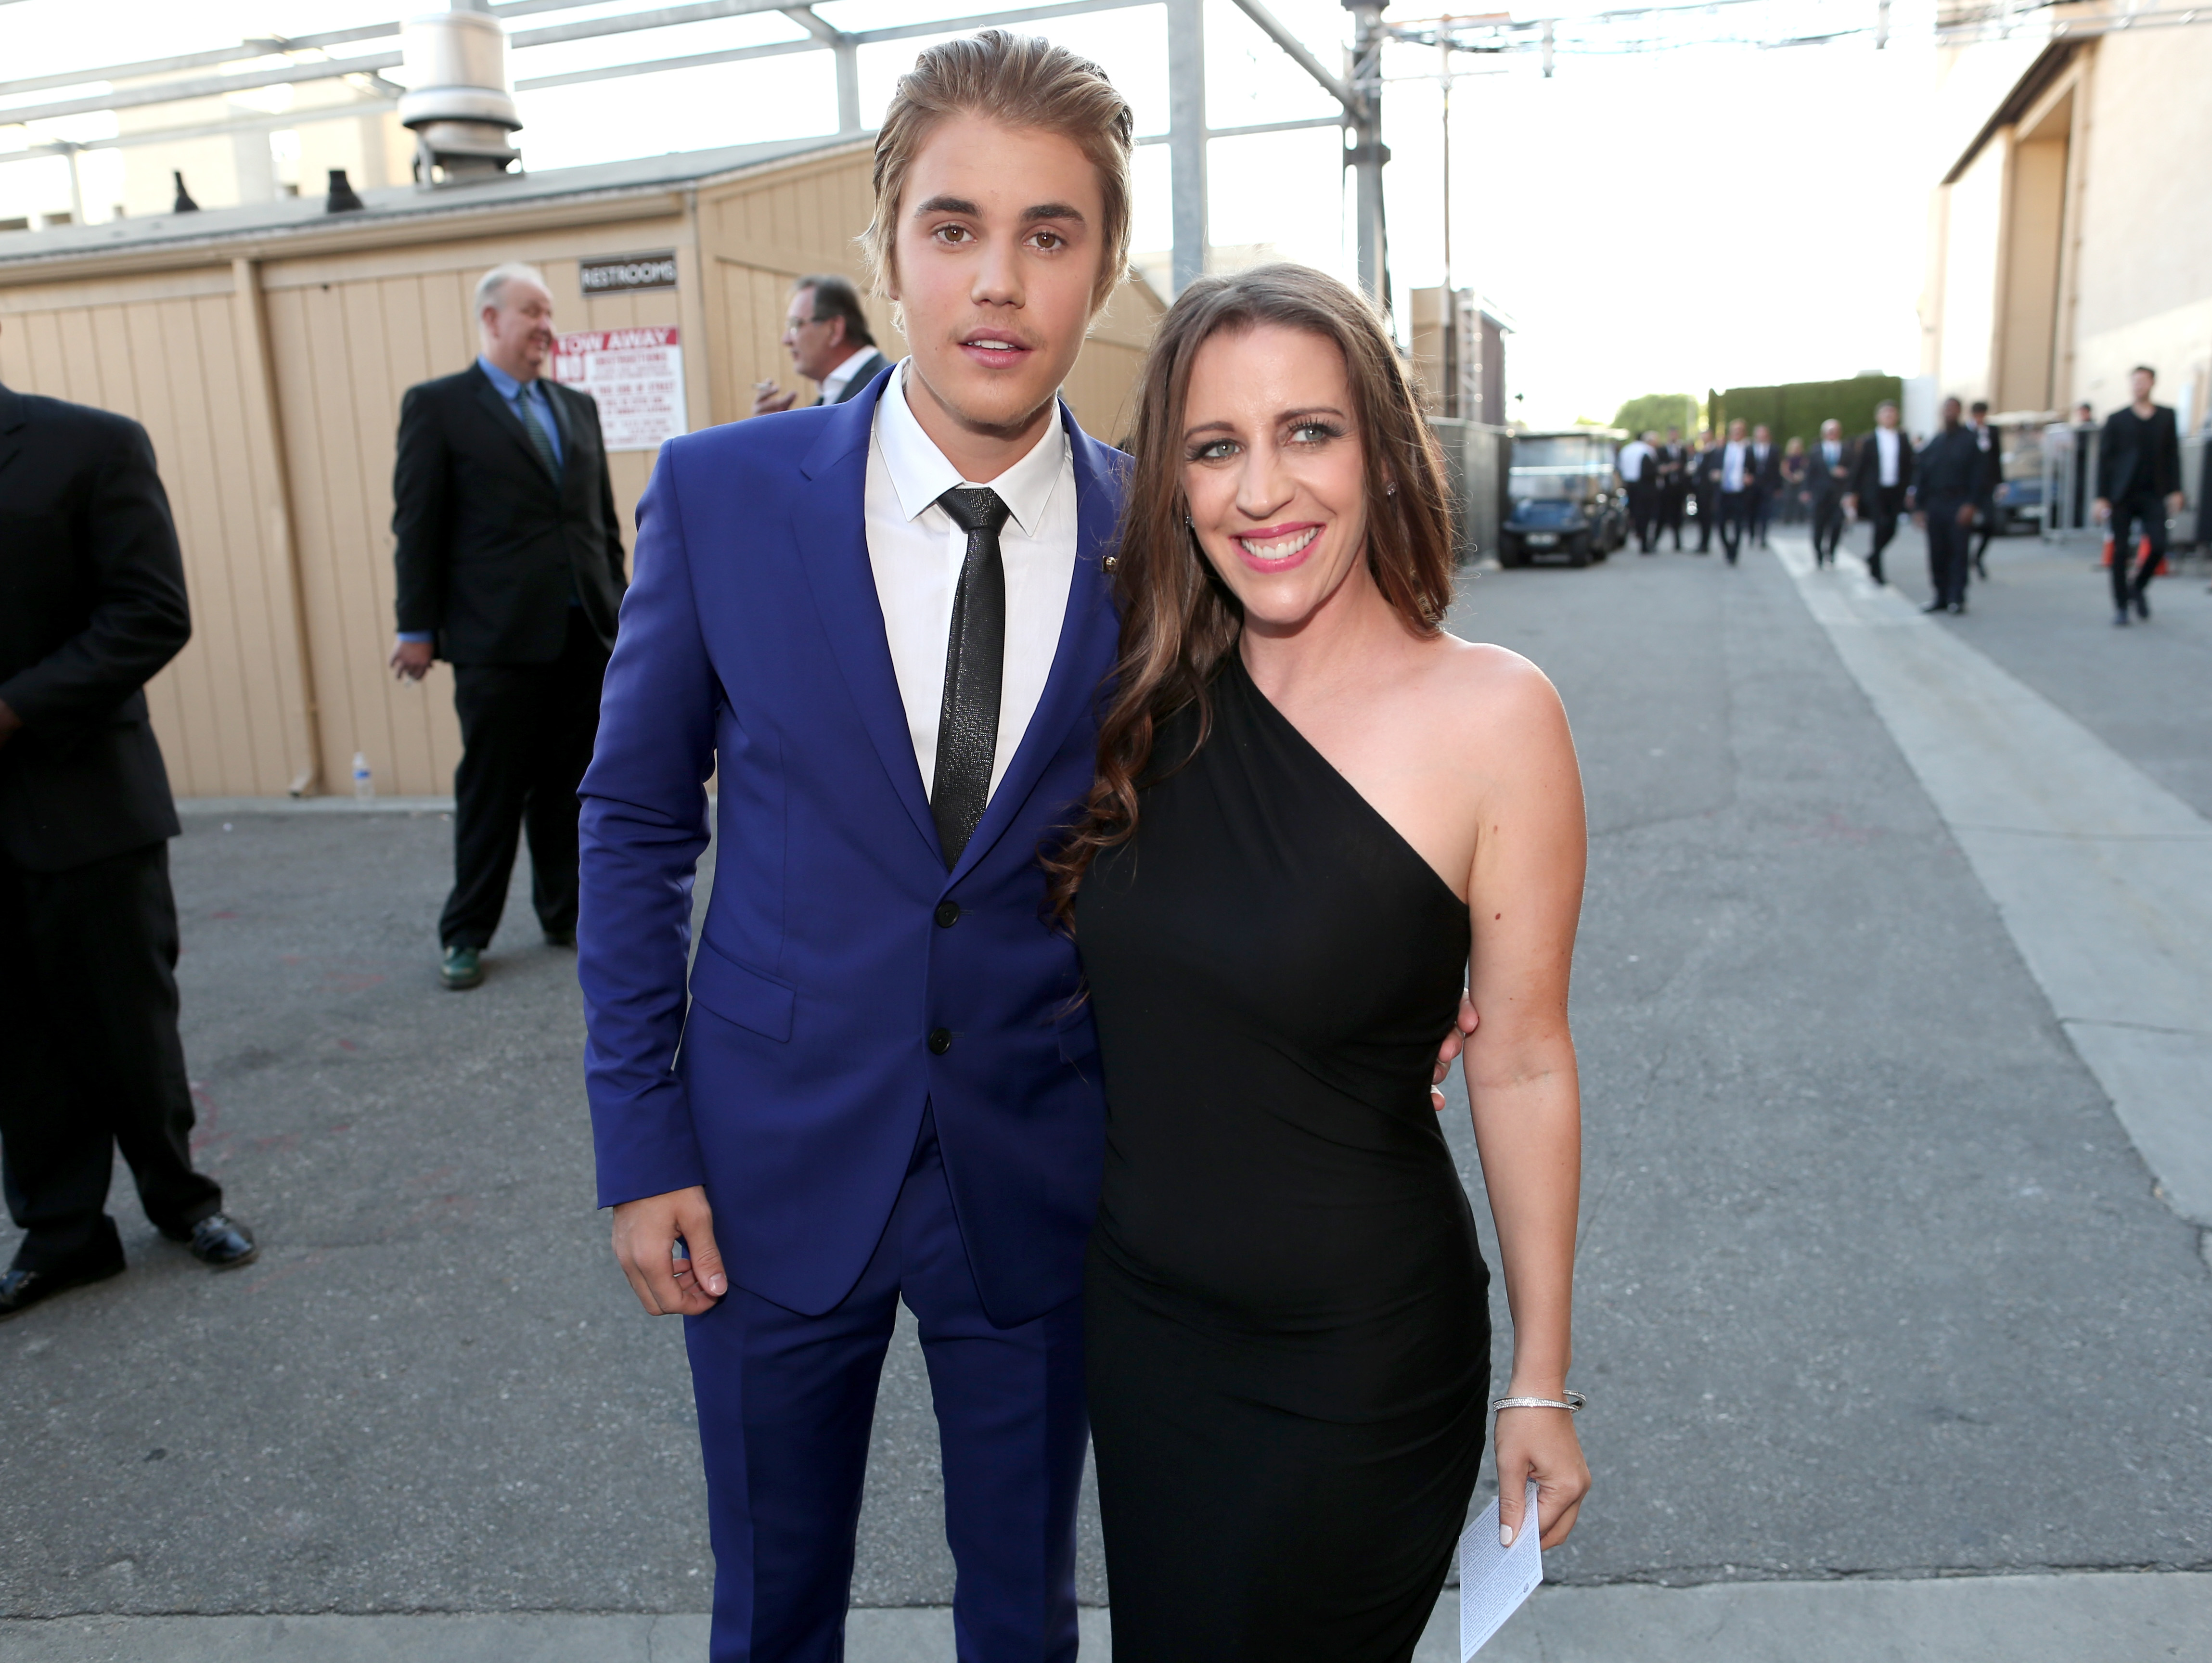 Justin Bieber and his mom, author Pattie Mallette, attend The Comedy Central Roast of Justin Bieber on March 14, 2015 in Los Angeles